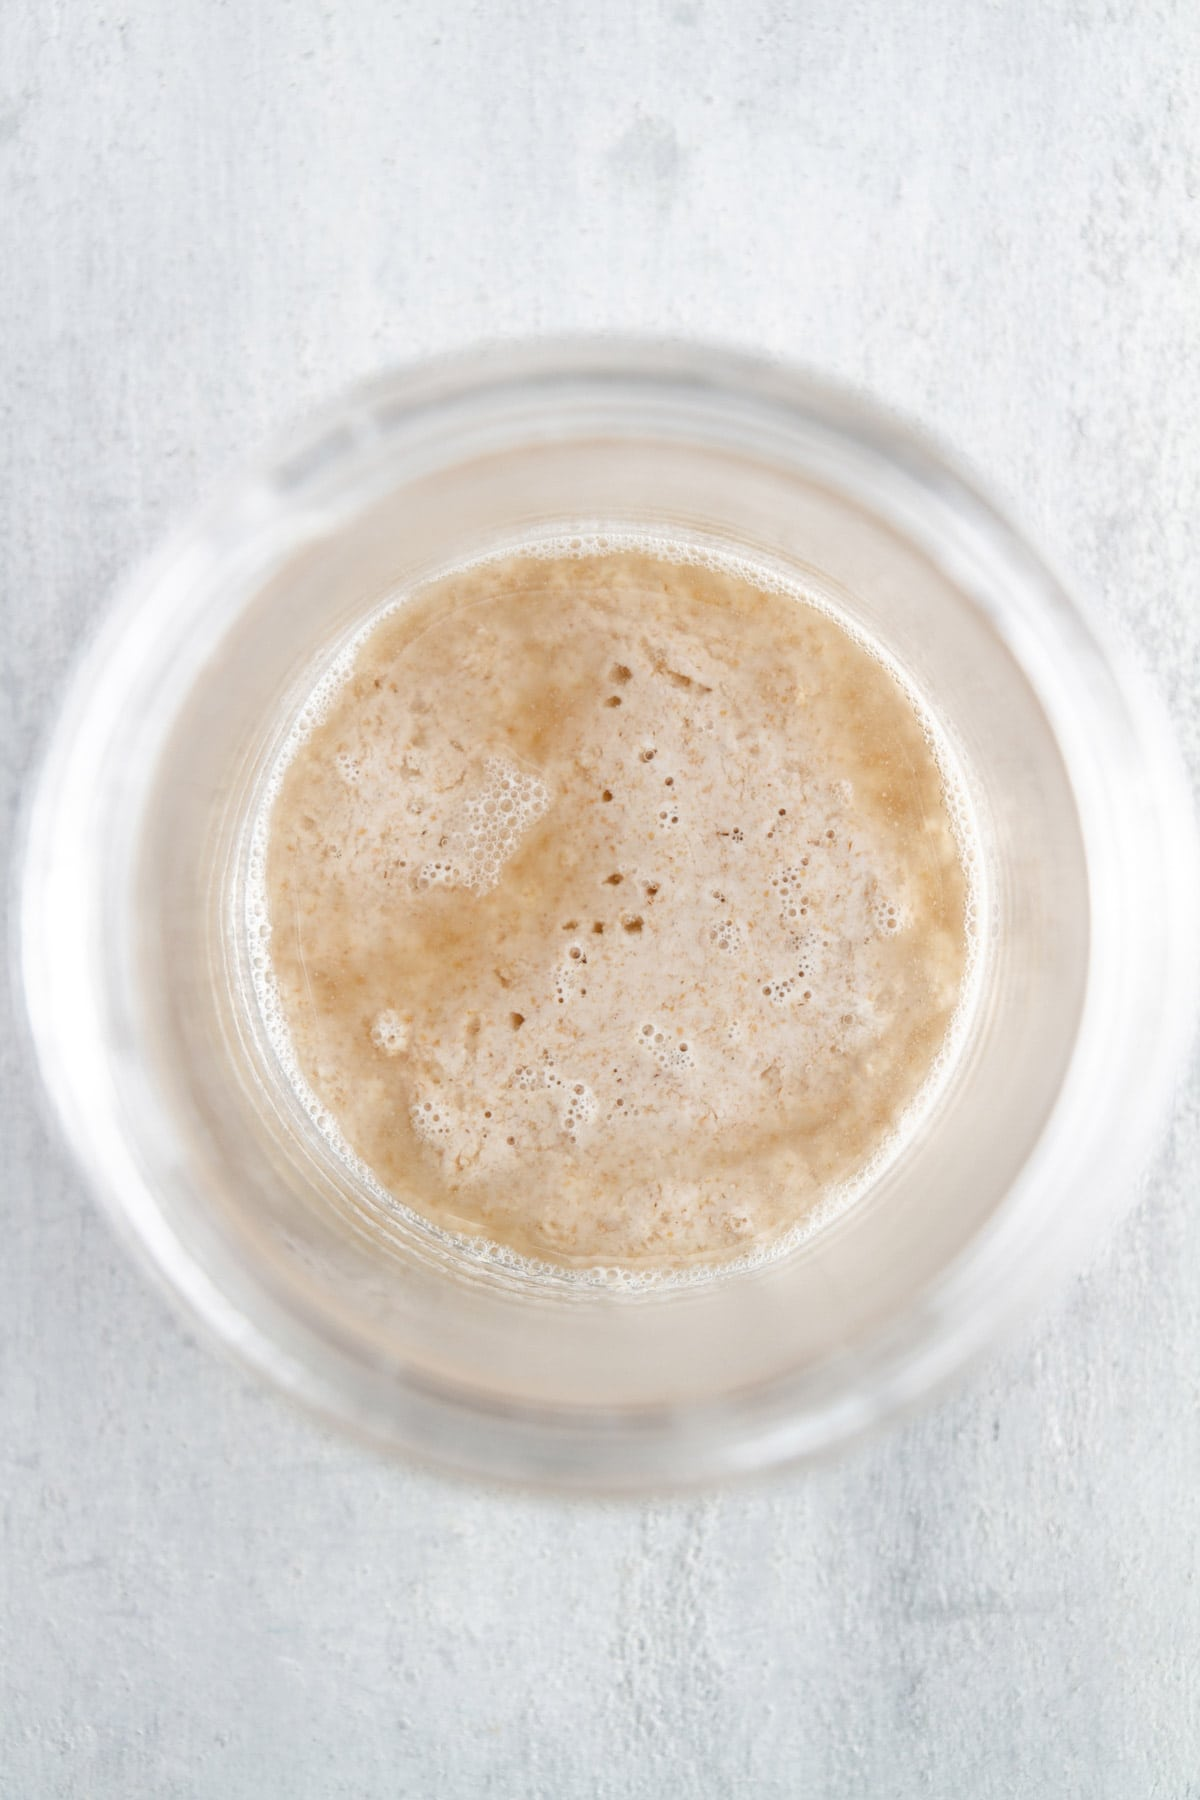 sourdough starter in a jar